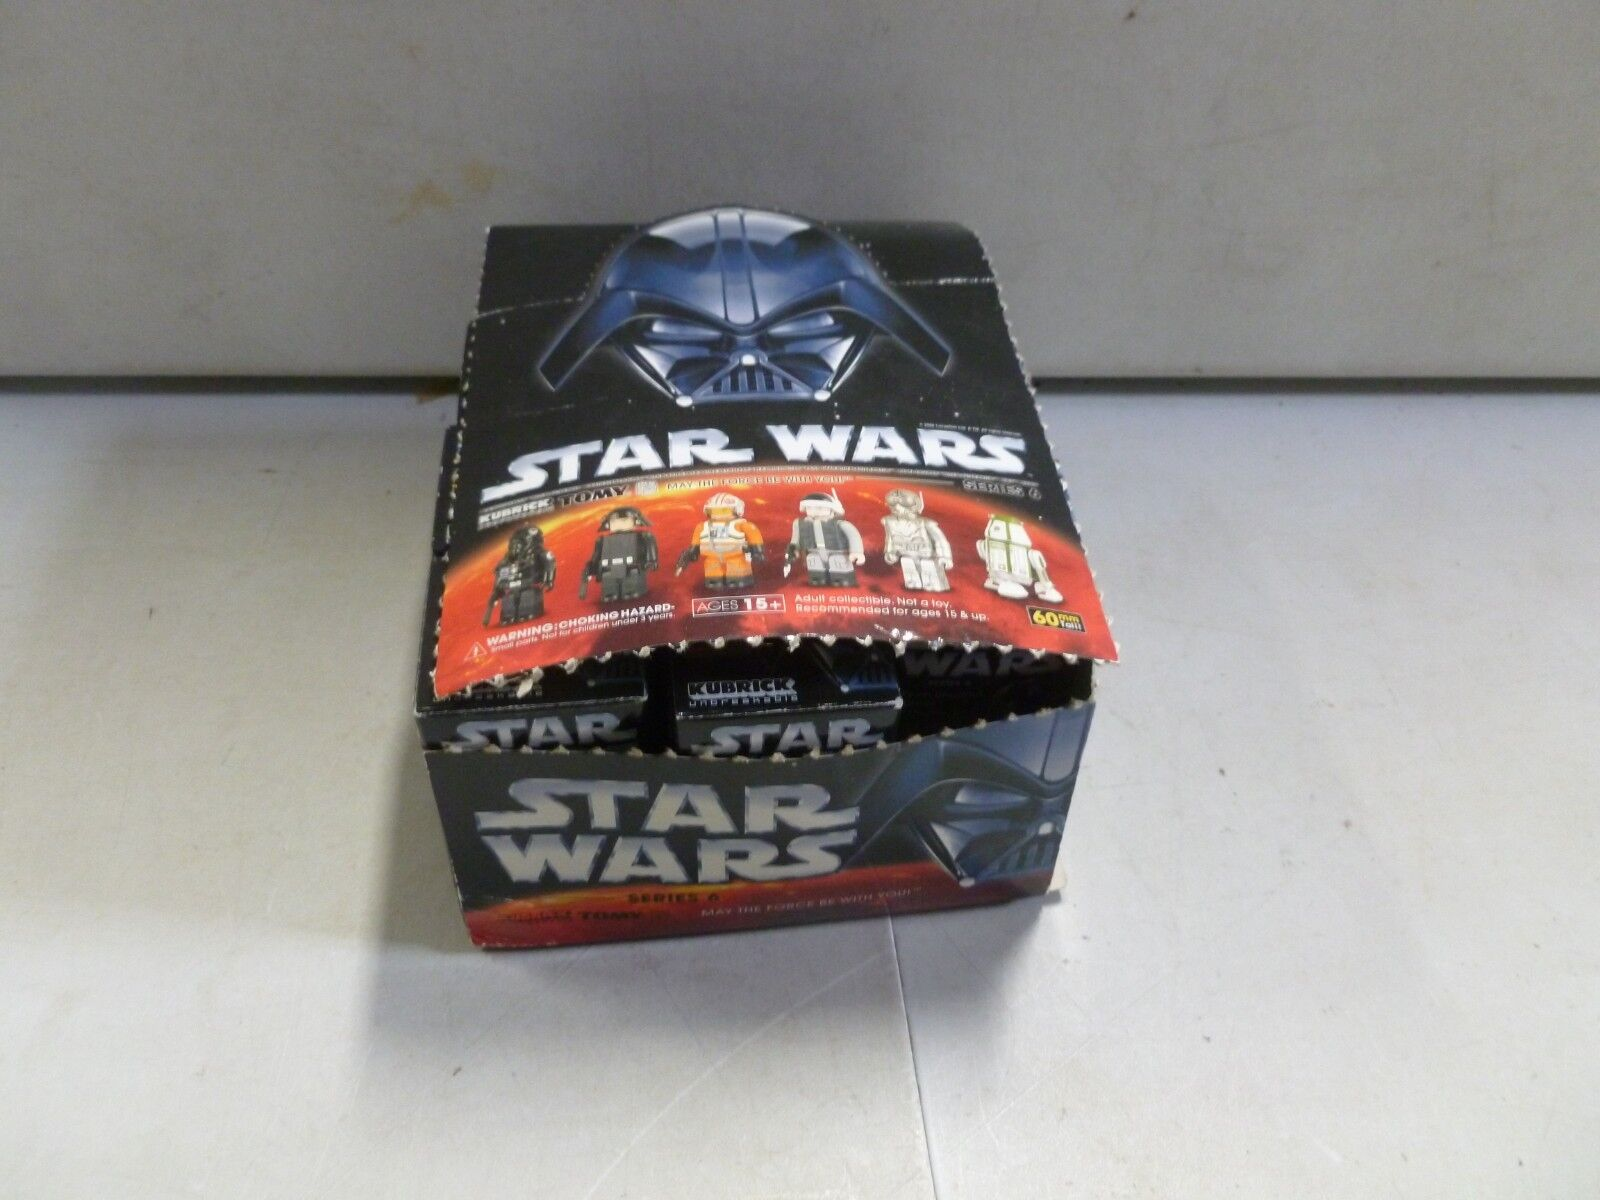 Lot of 10 Star Wars Cubric Figures Series 6